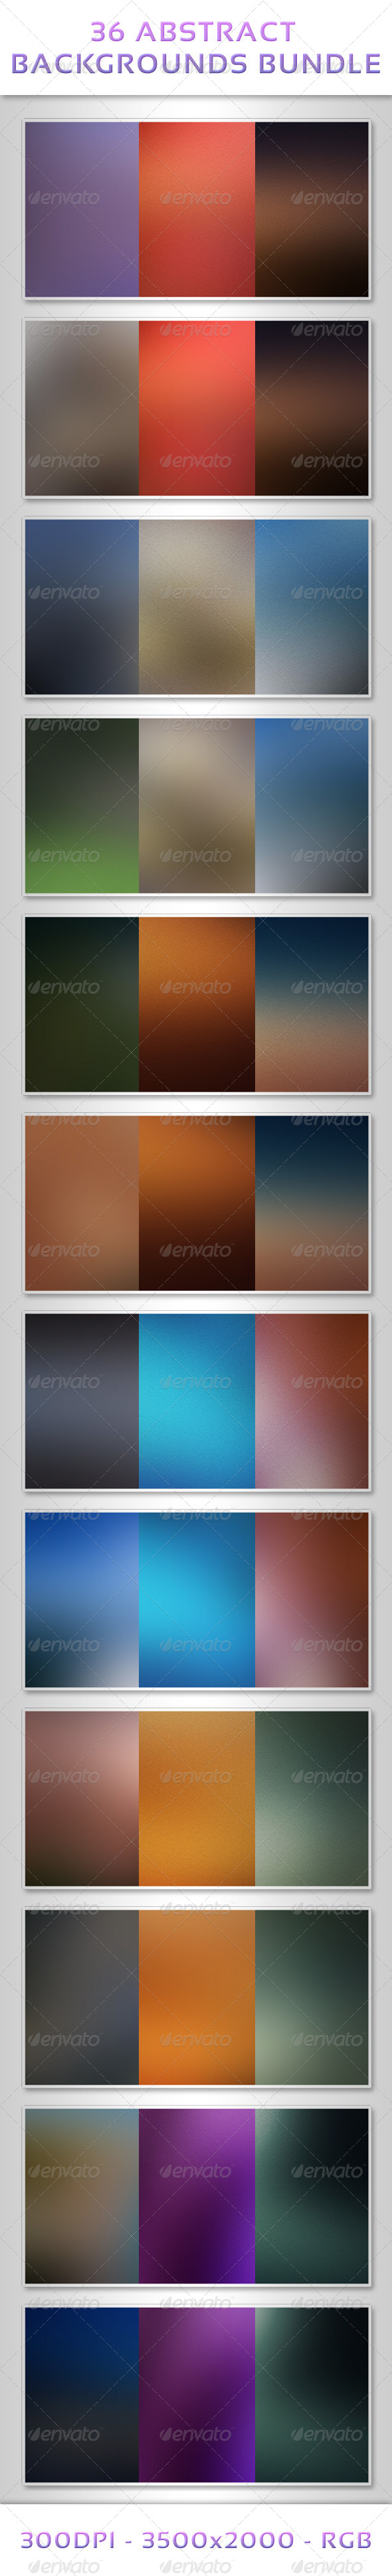 GraphicRiver 36 Abstract Backgrounds Bundle 7342842